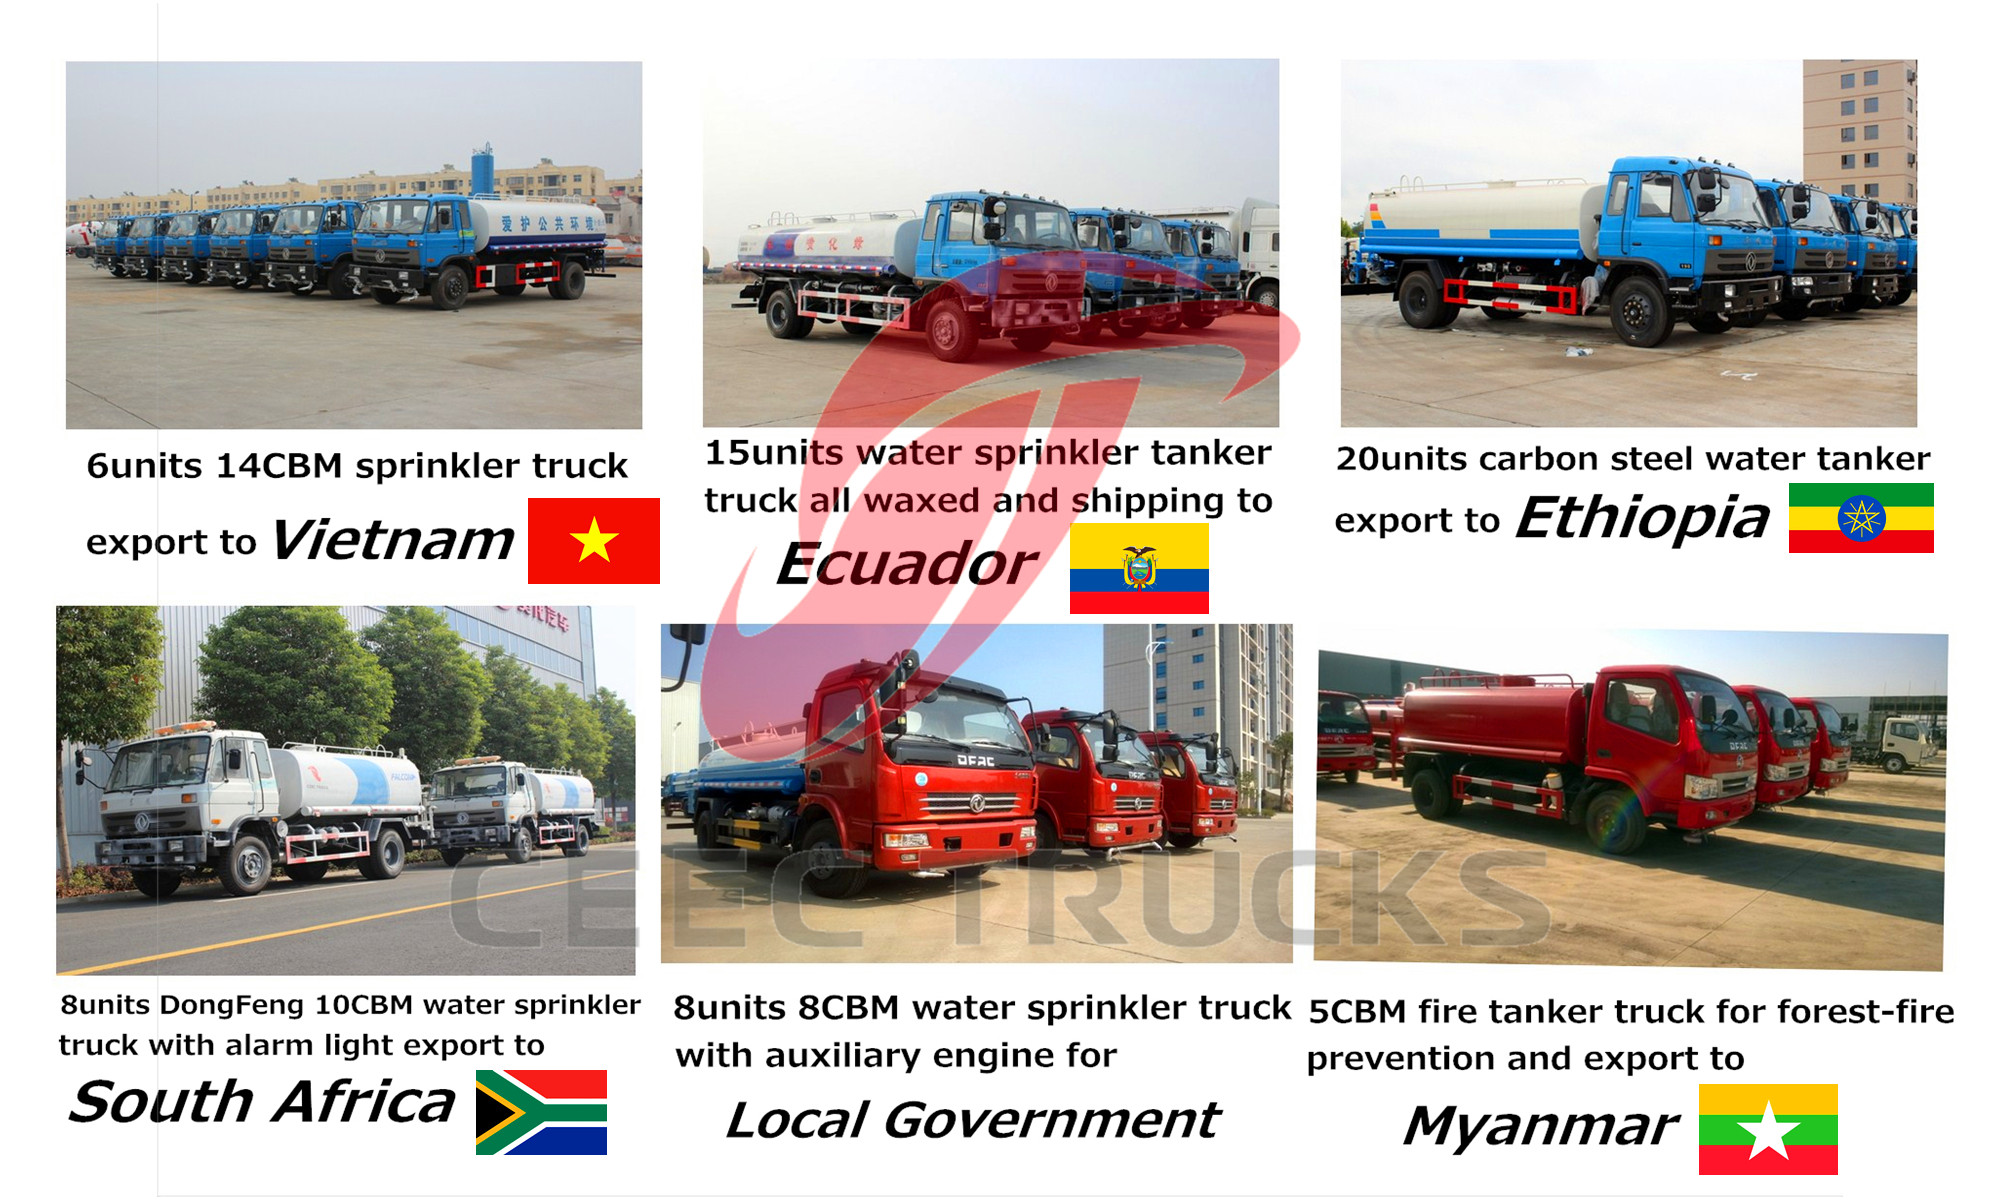 CEEC water tank truck previous export